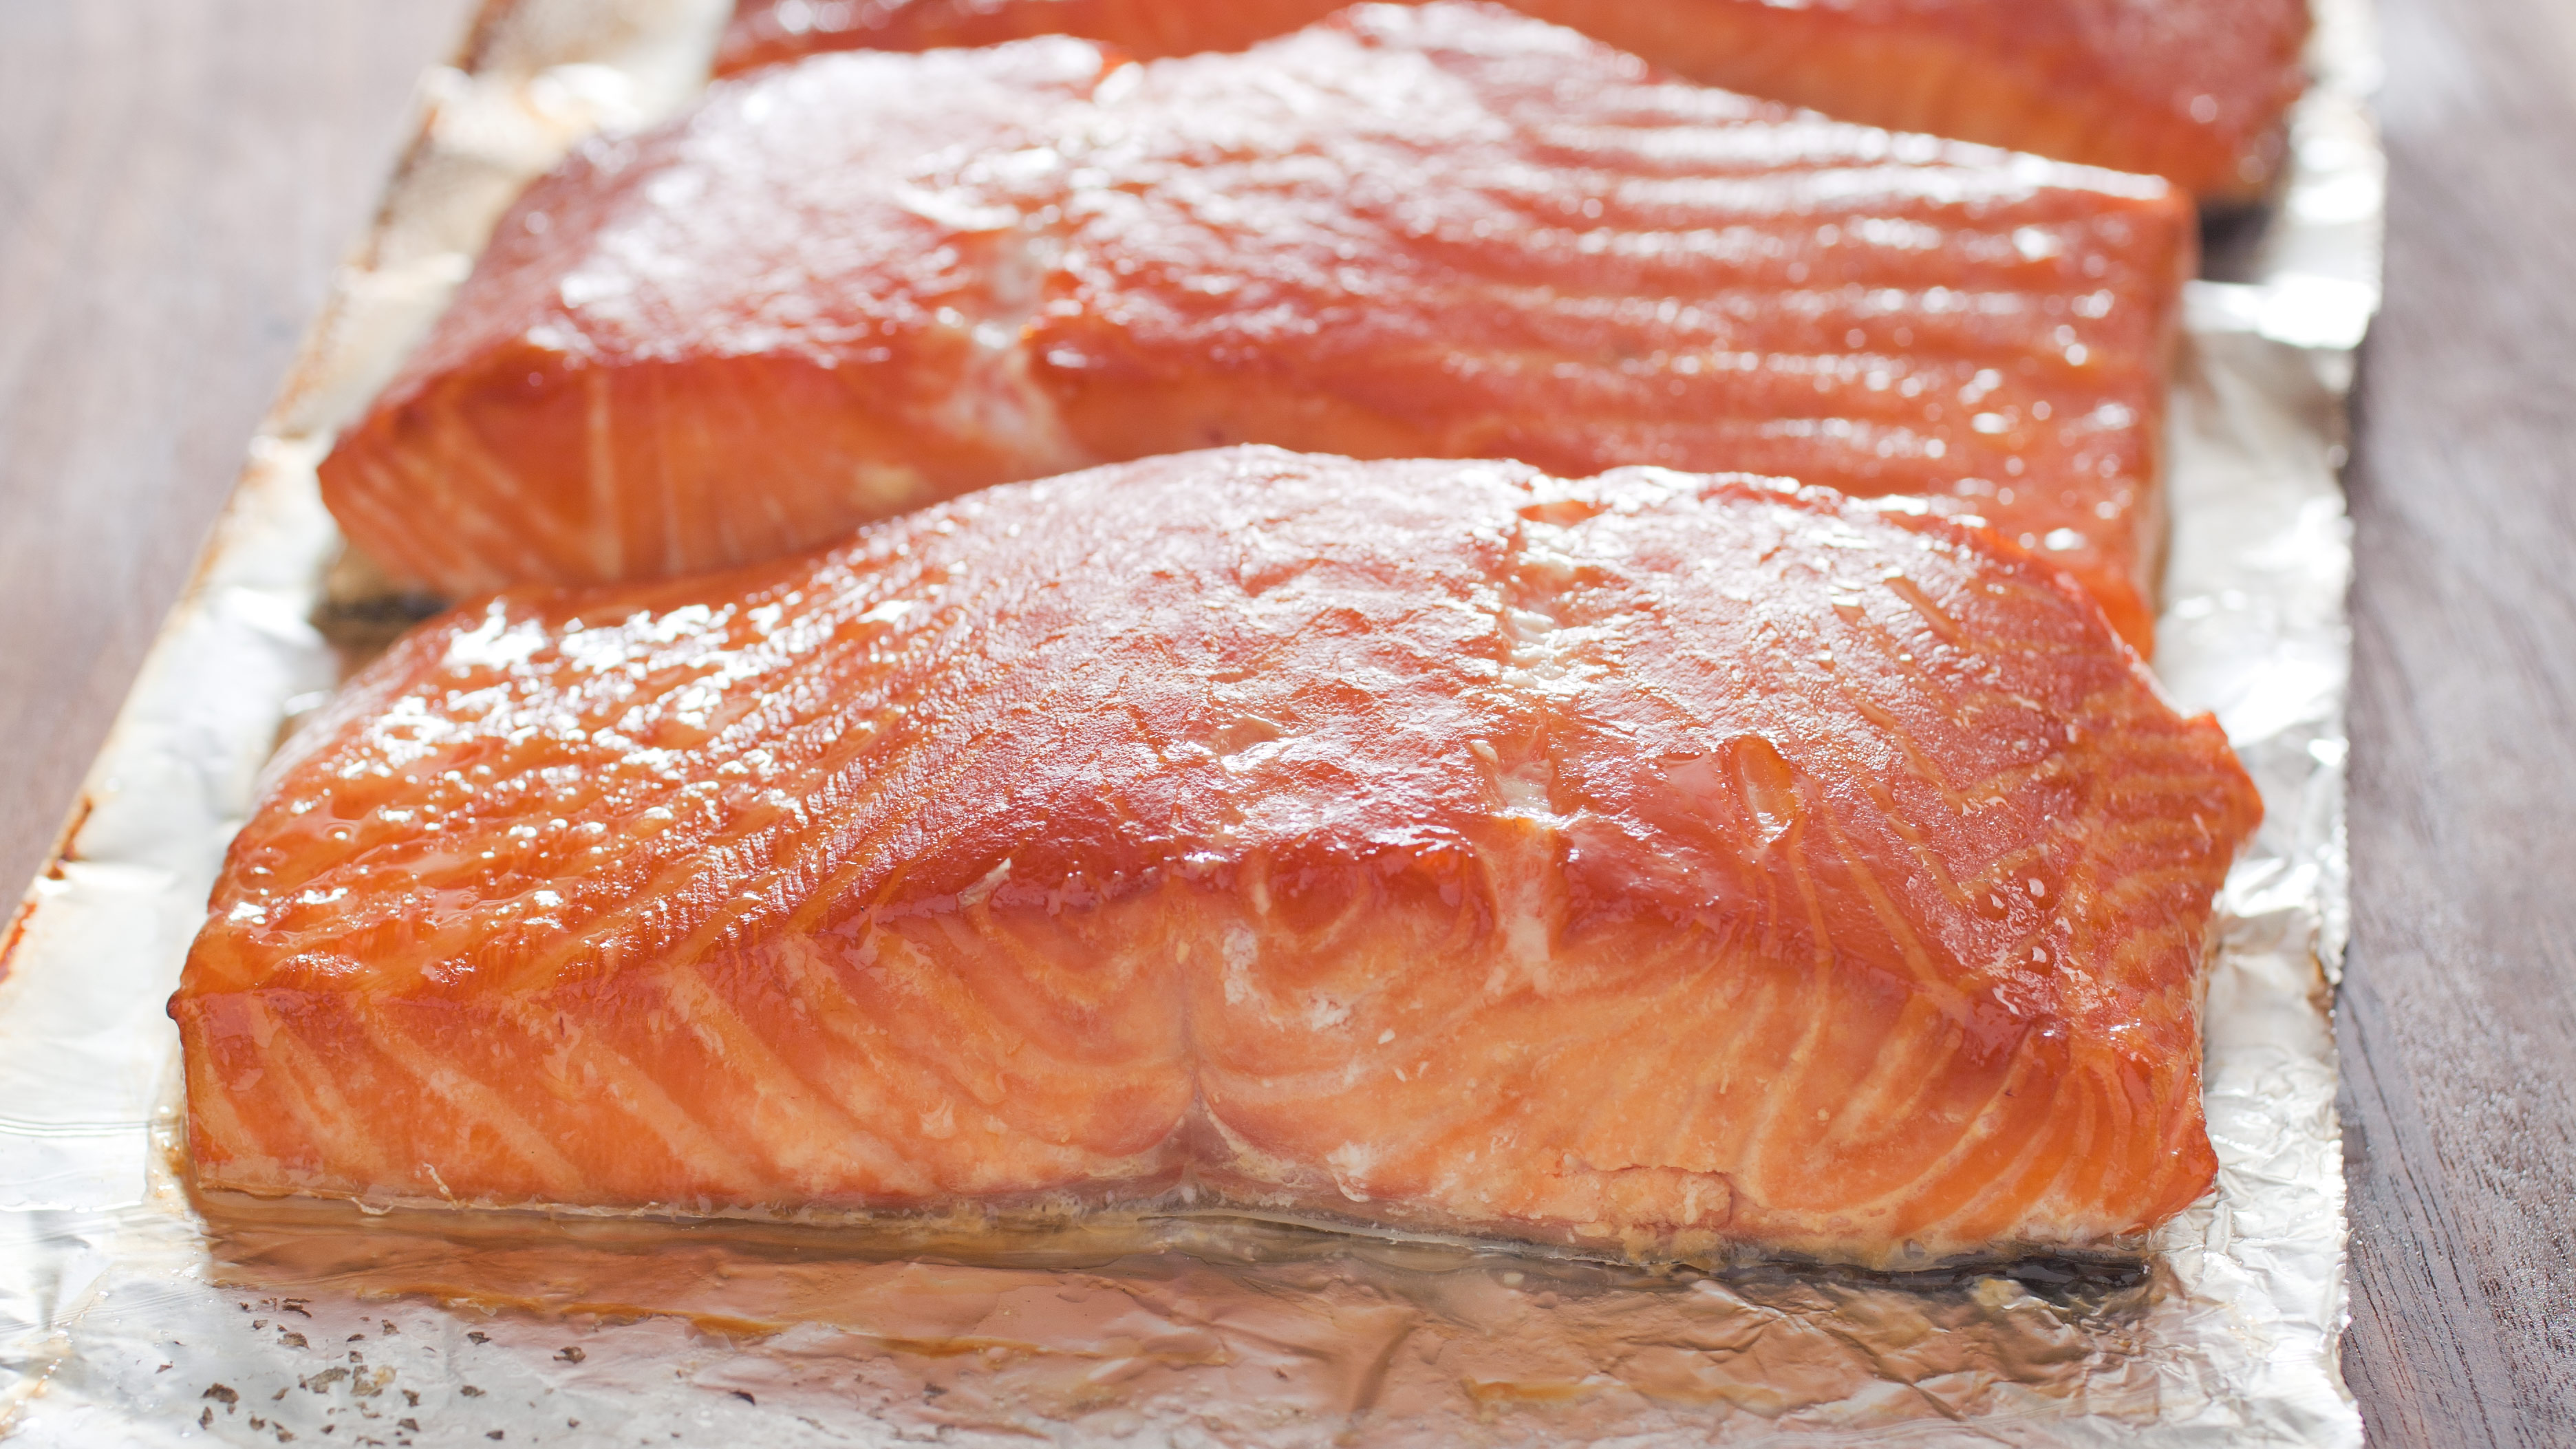 The Science of Cooking: Perfectly Cooked Salmon